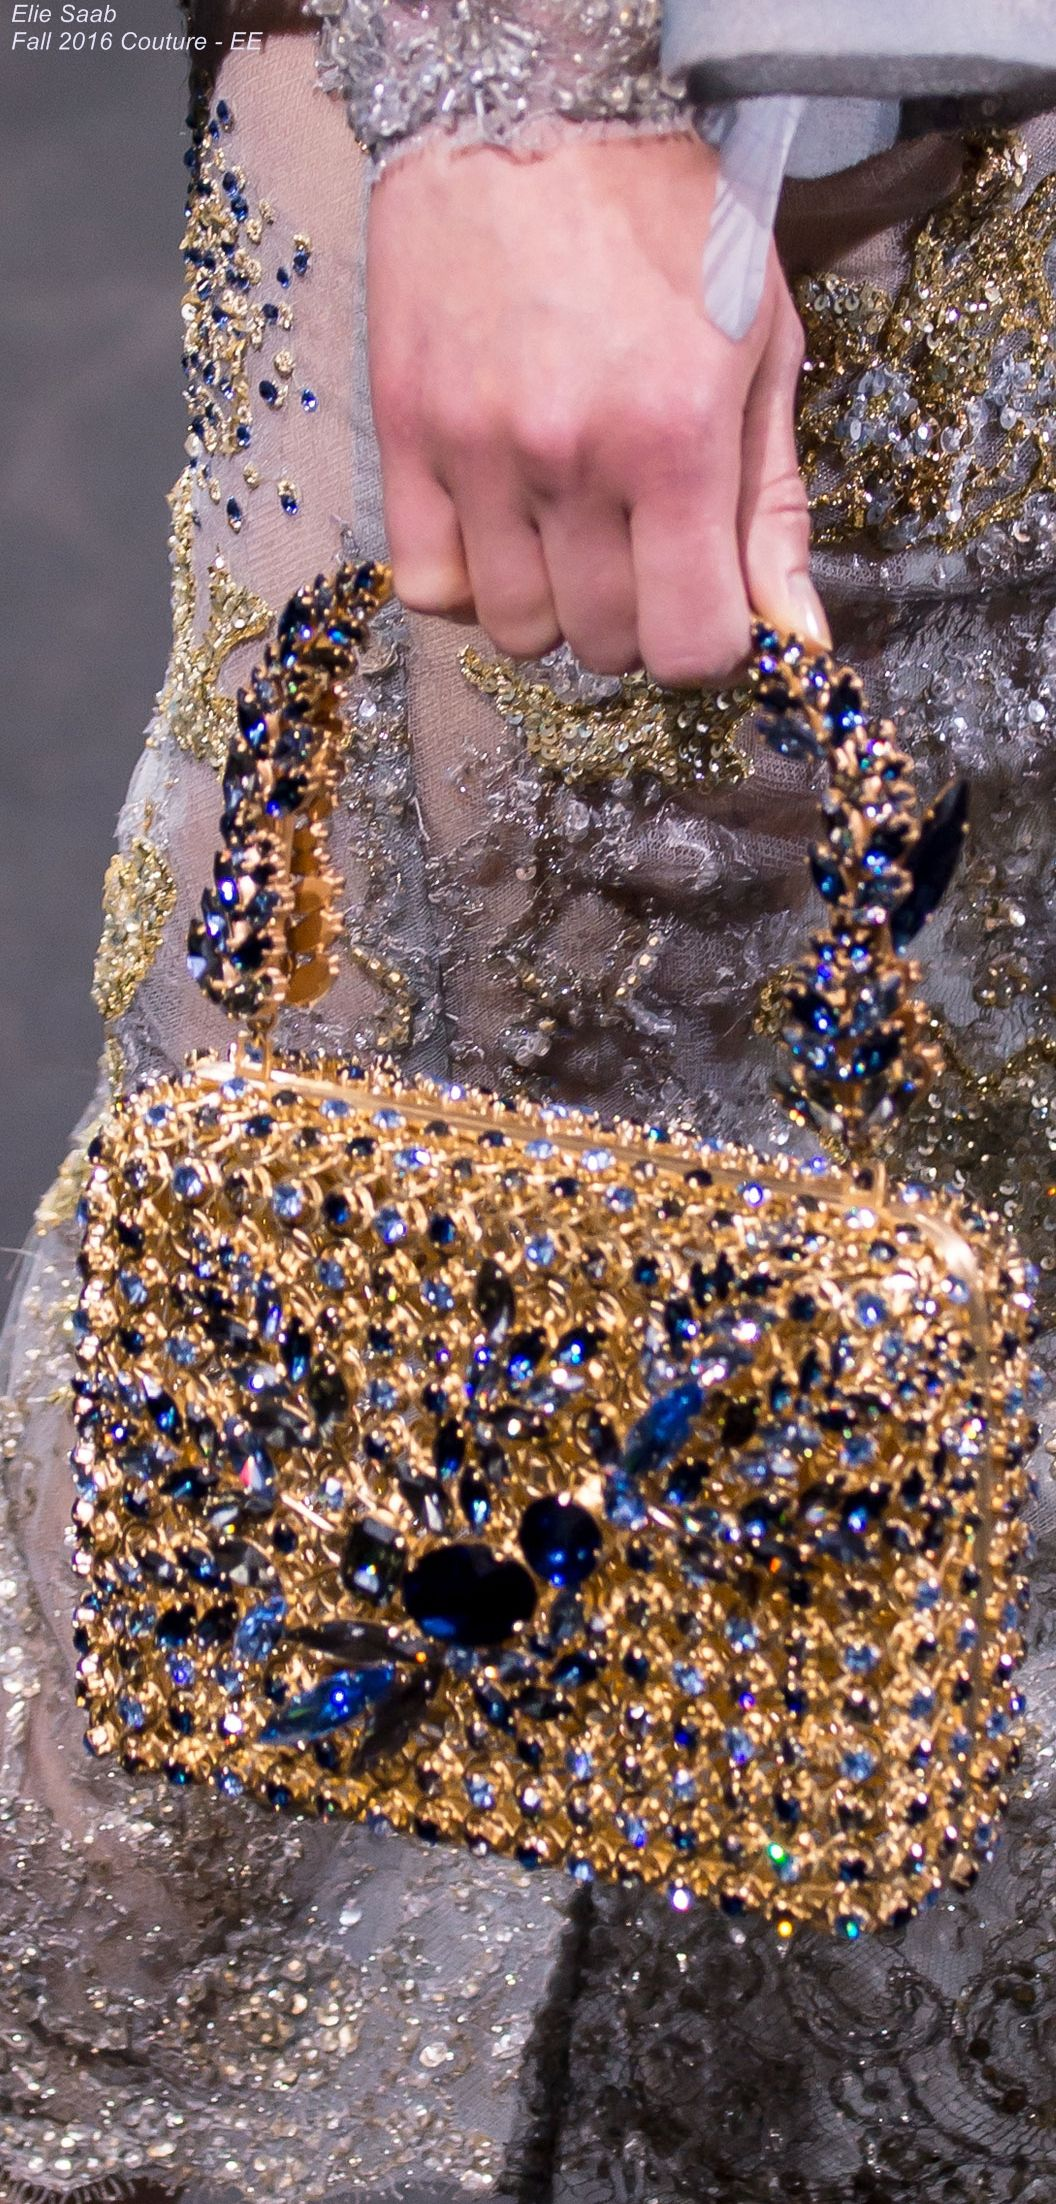 Elie Saab Fall 2017 Couture Ee Hobo International Handbags Online And Purses For Less Brown Purse Black Leather